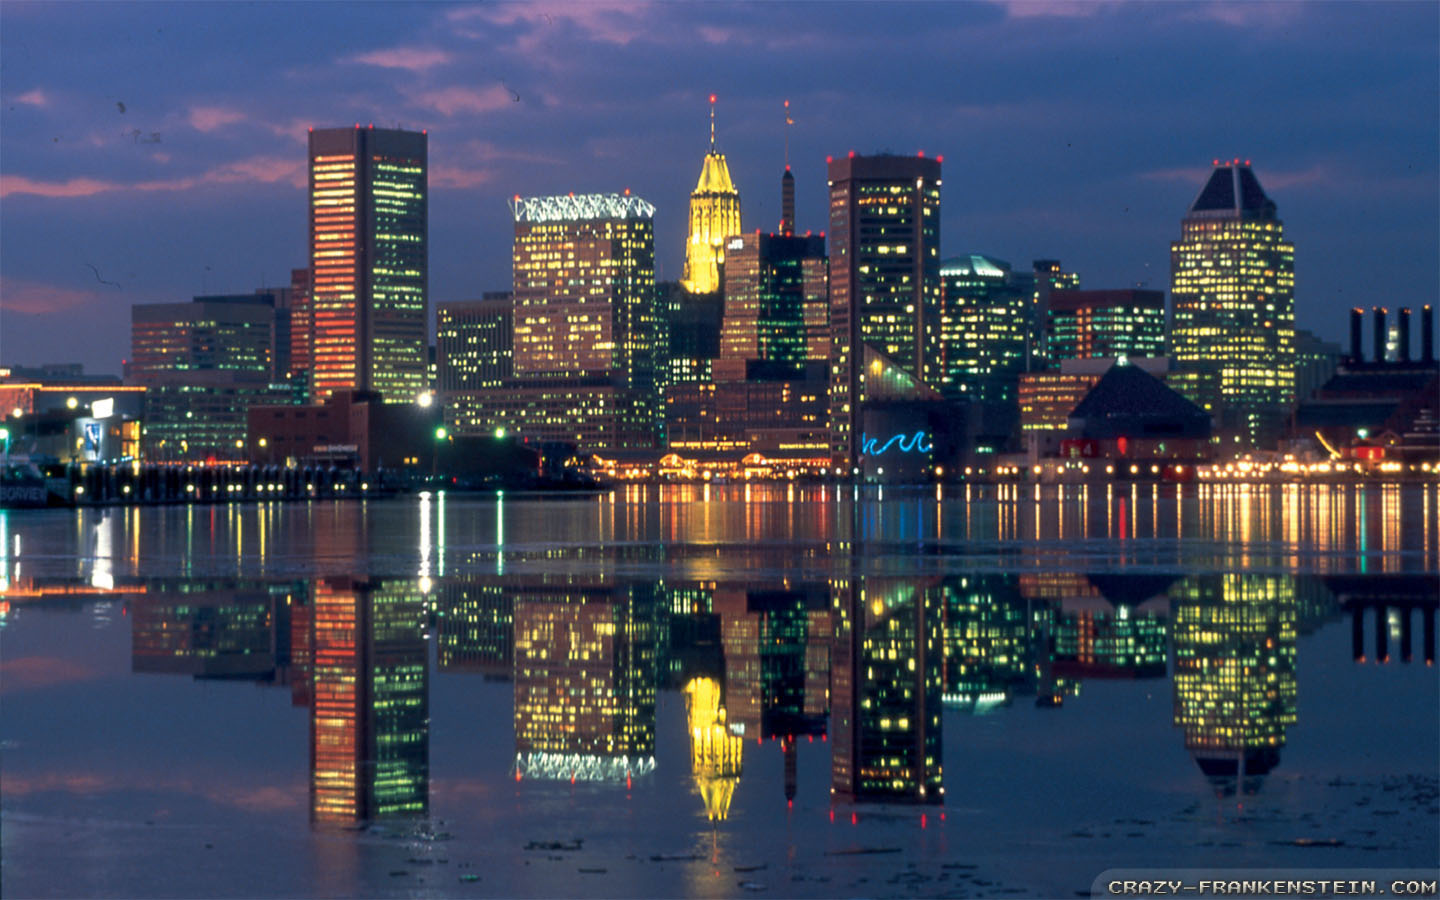 Wallpaper: Baltimore night wallpapers. Resolution: 1024x768 | 1280x1024 | 1600x1200